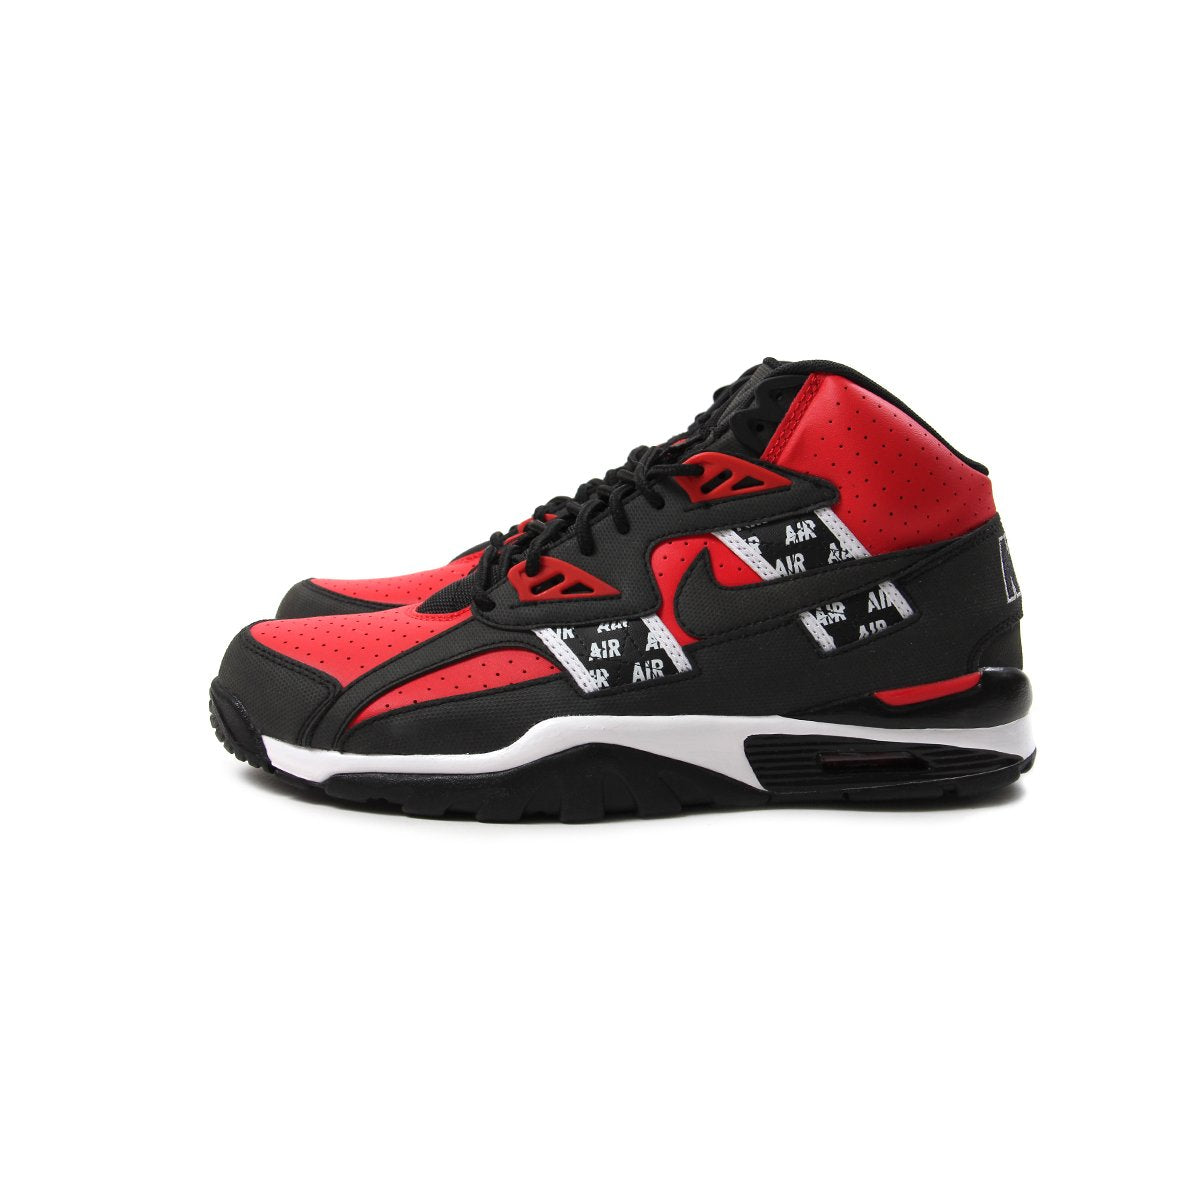 uk availability f2bdc 31830 ConceptsIntl | Nike Air Trainer SC High SOA (Speed Red/Black-White)